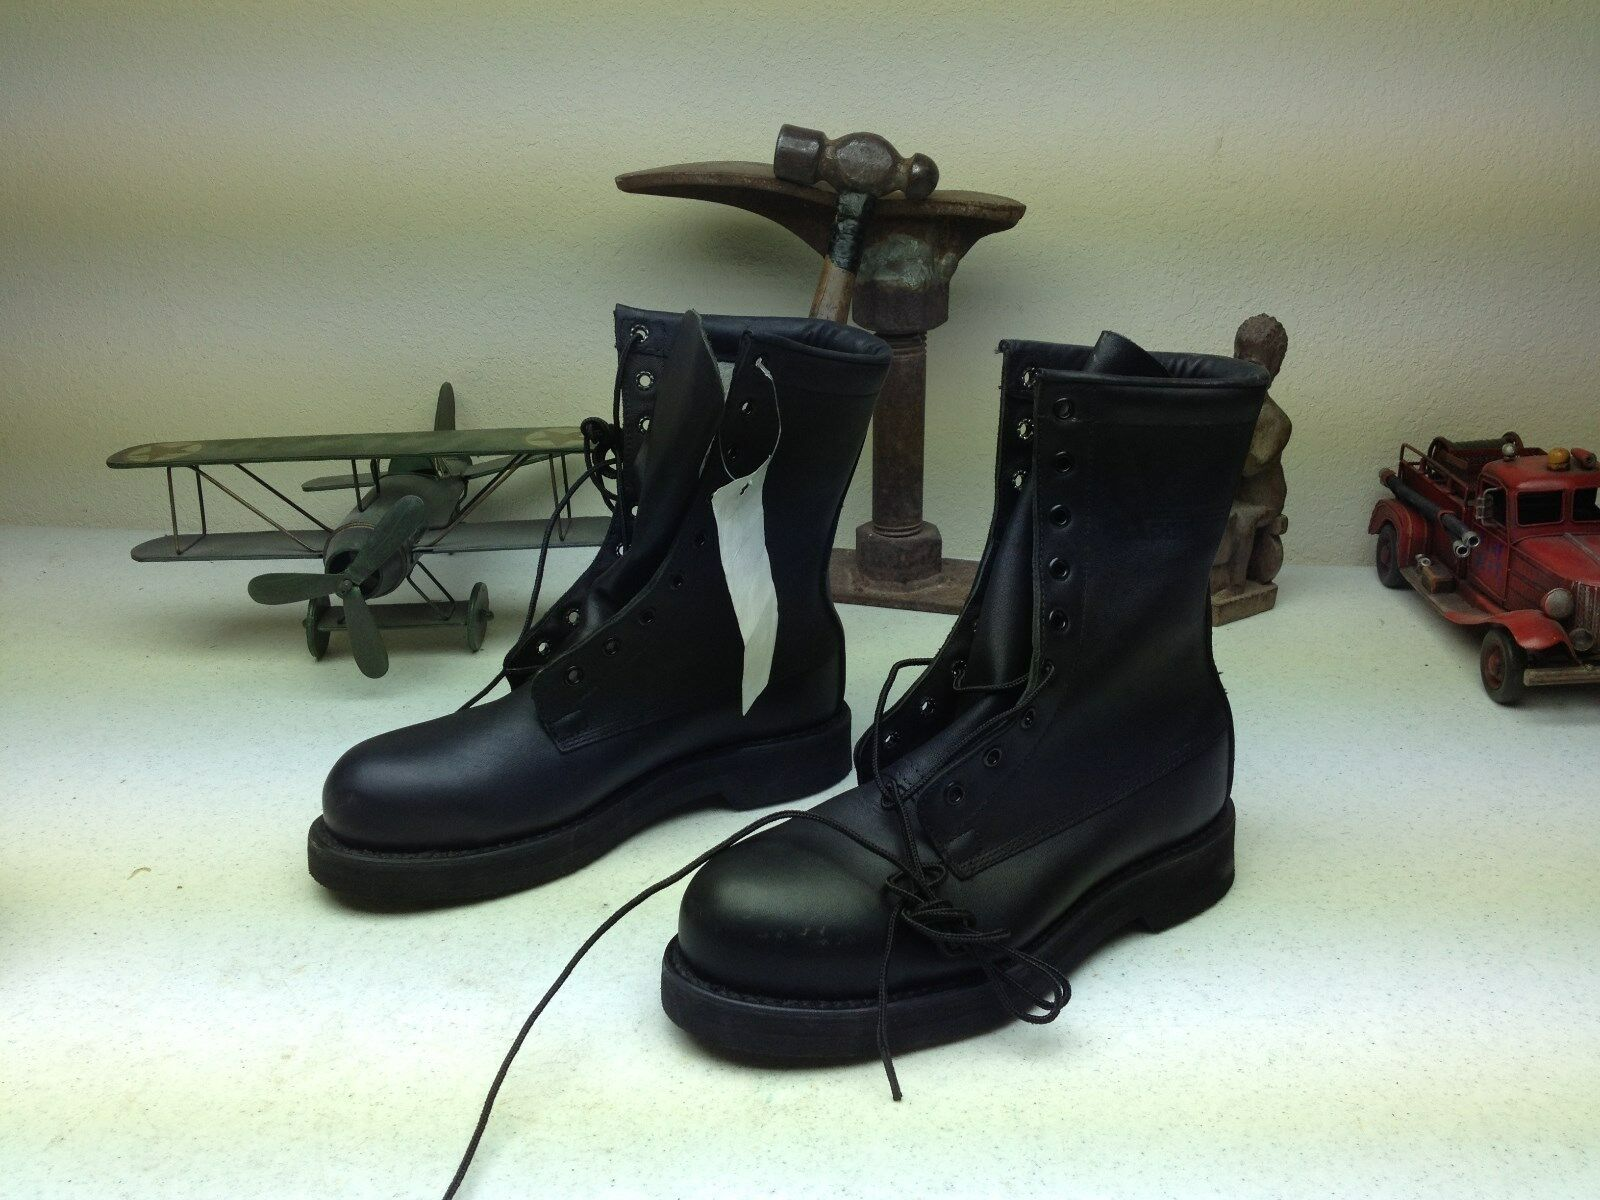 MINT 2004 ADDISON BLACK LACE UP MILITARY COMBAT ARMY BOOTS USA BIKER BOOTS 5.5 W